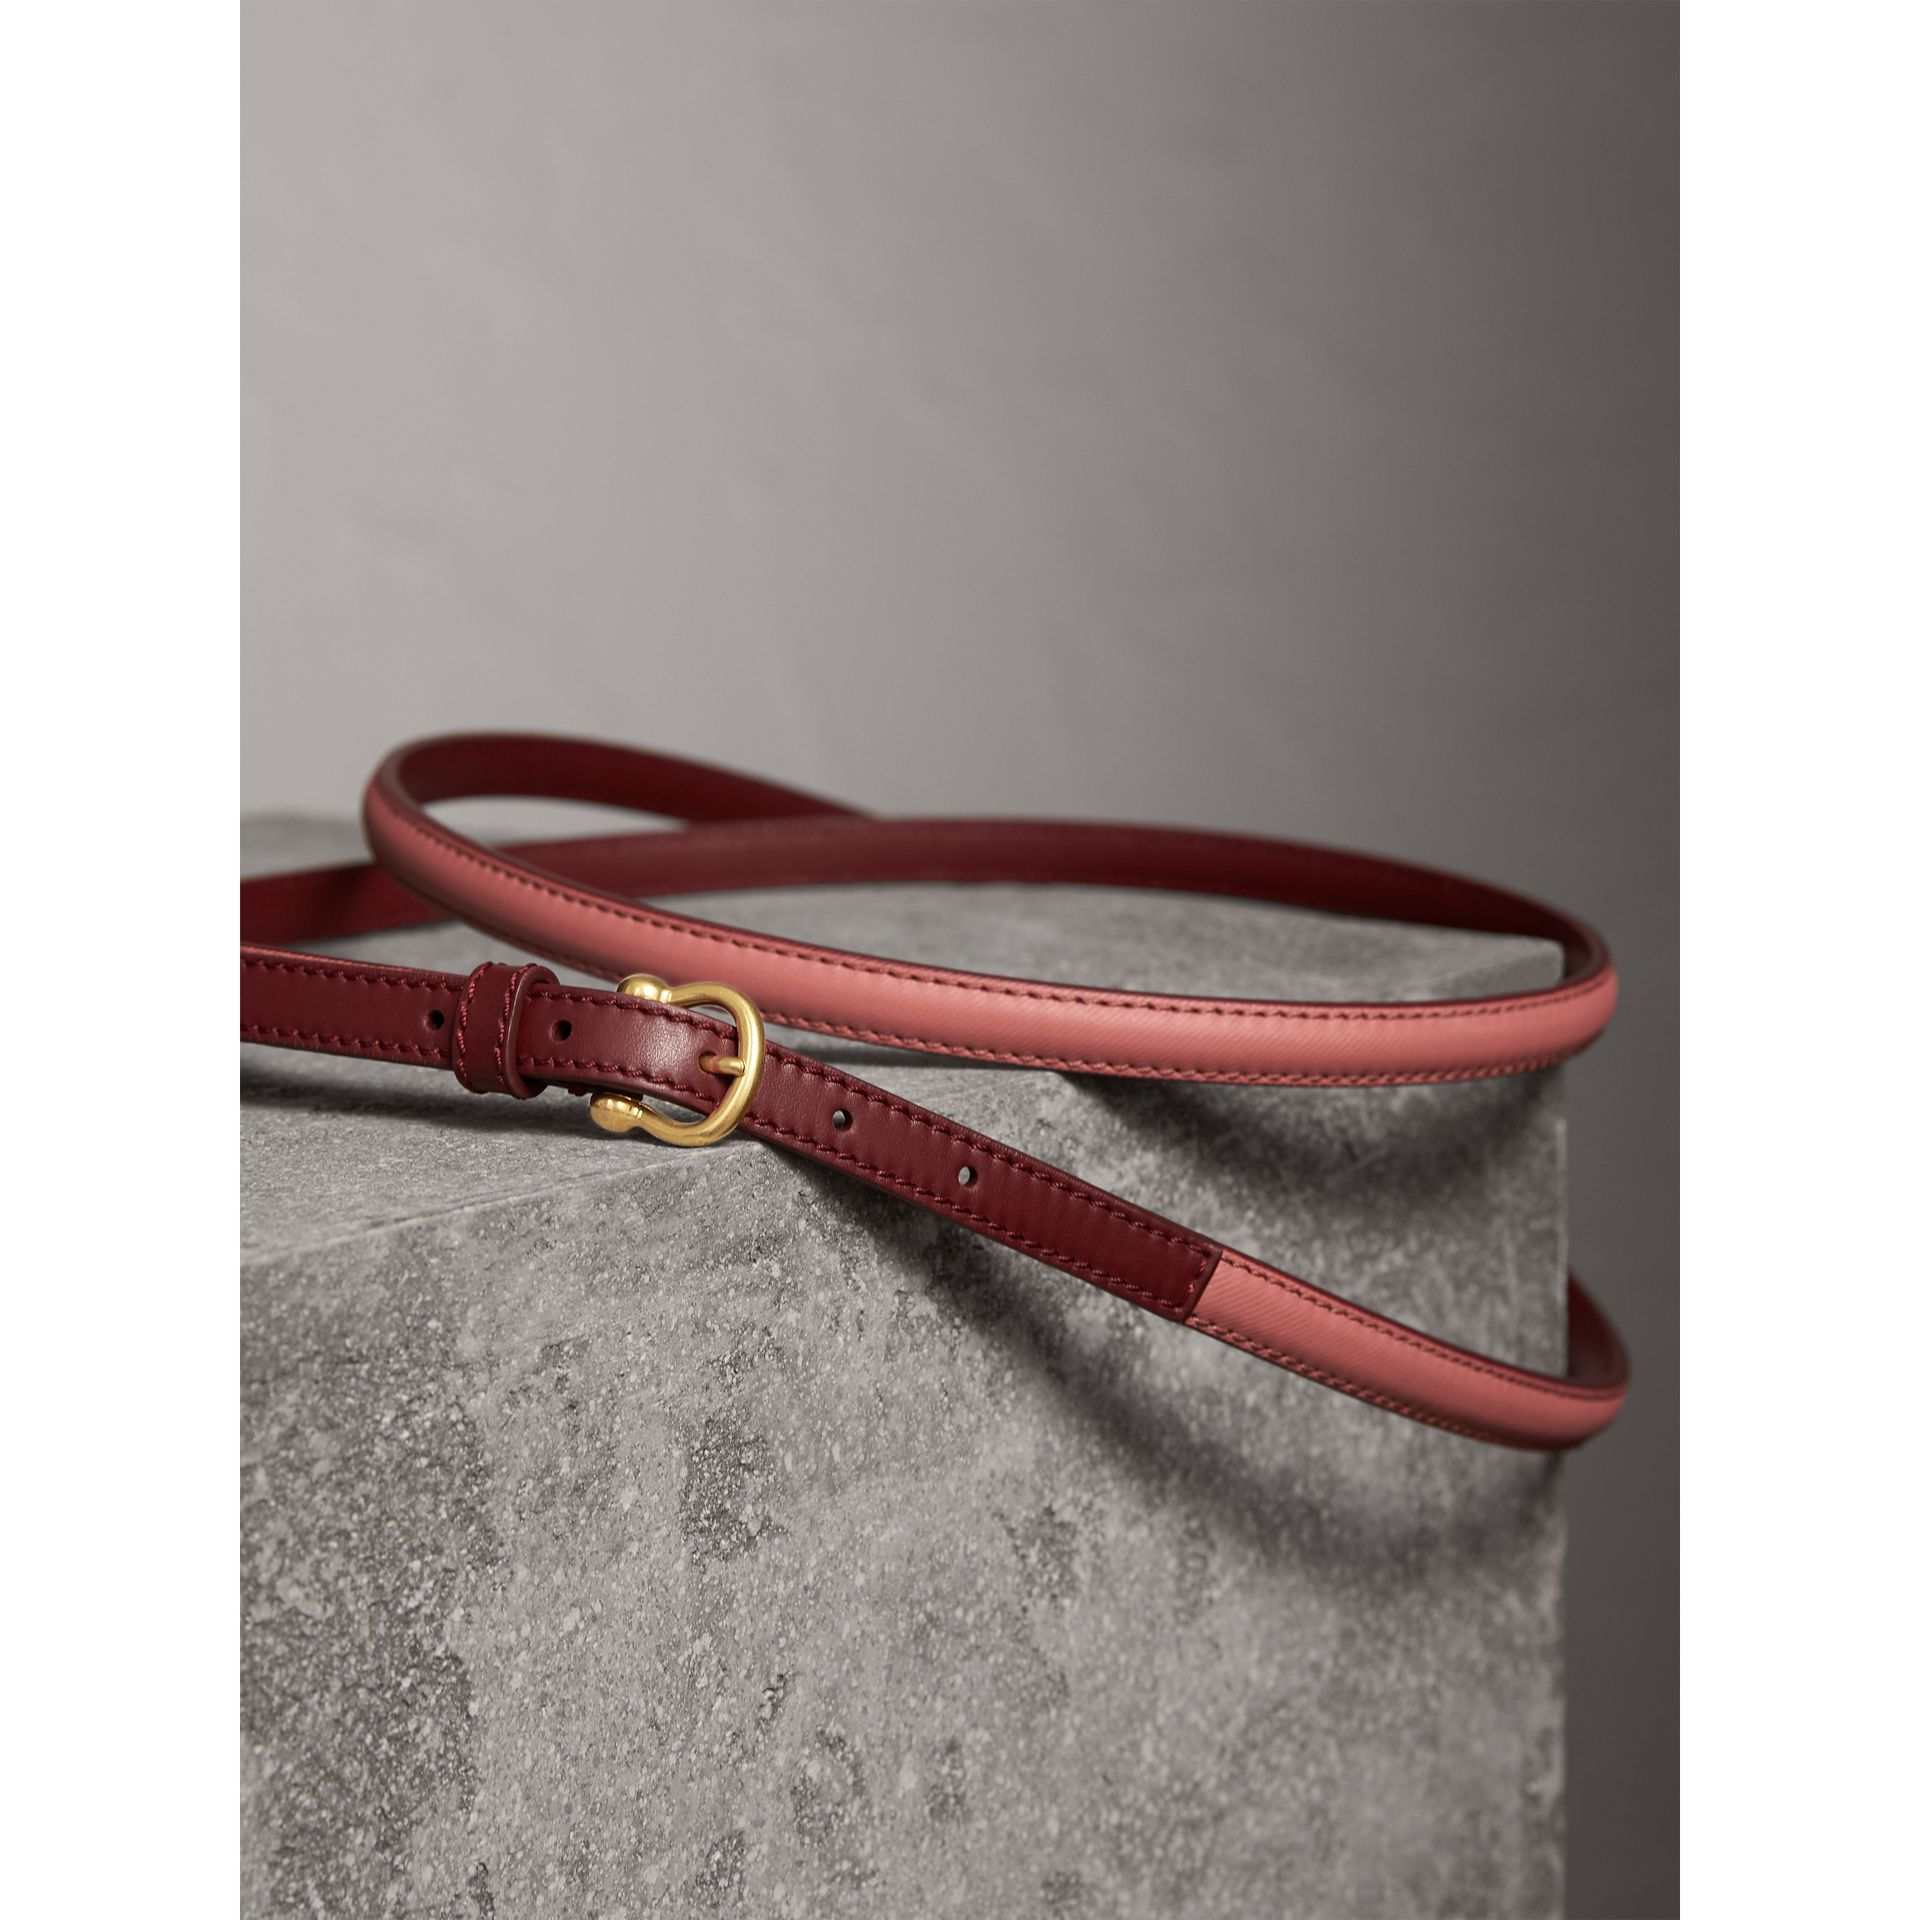 Two-tone Trench Leather Belt in Blossom Pink/ Antique Red - Women | Burberry - gallery image 3